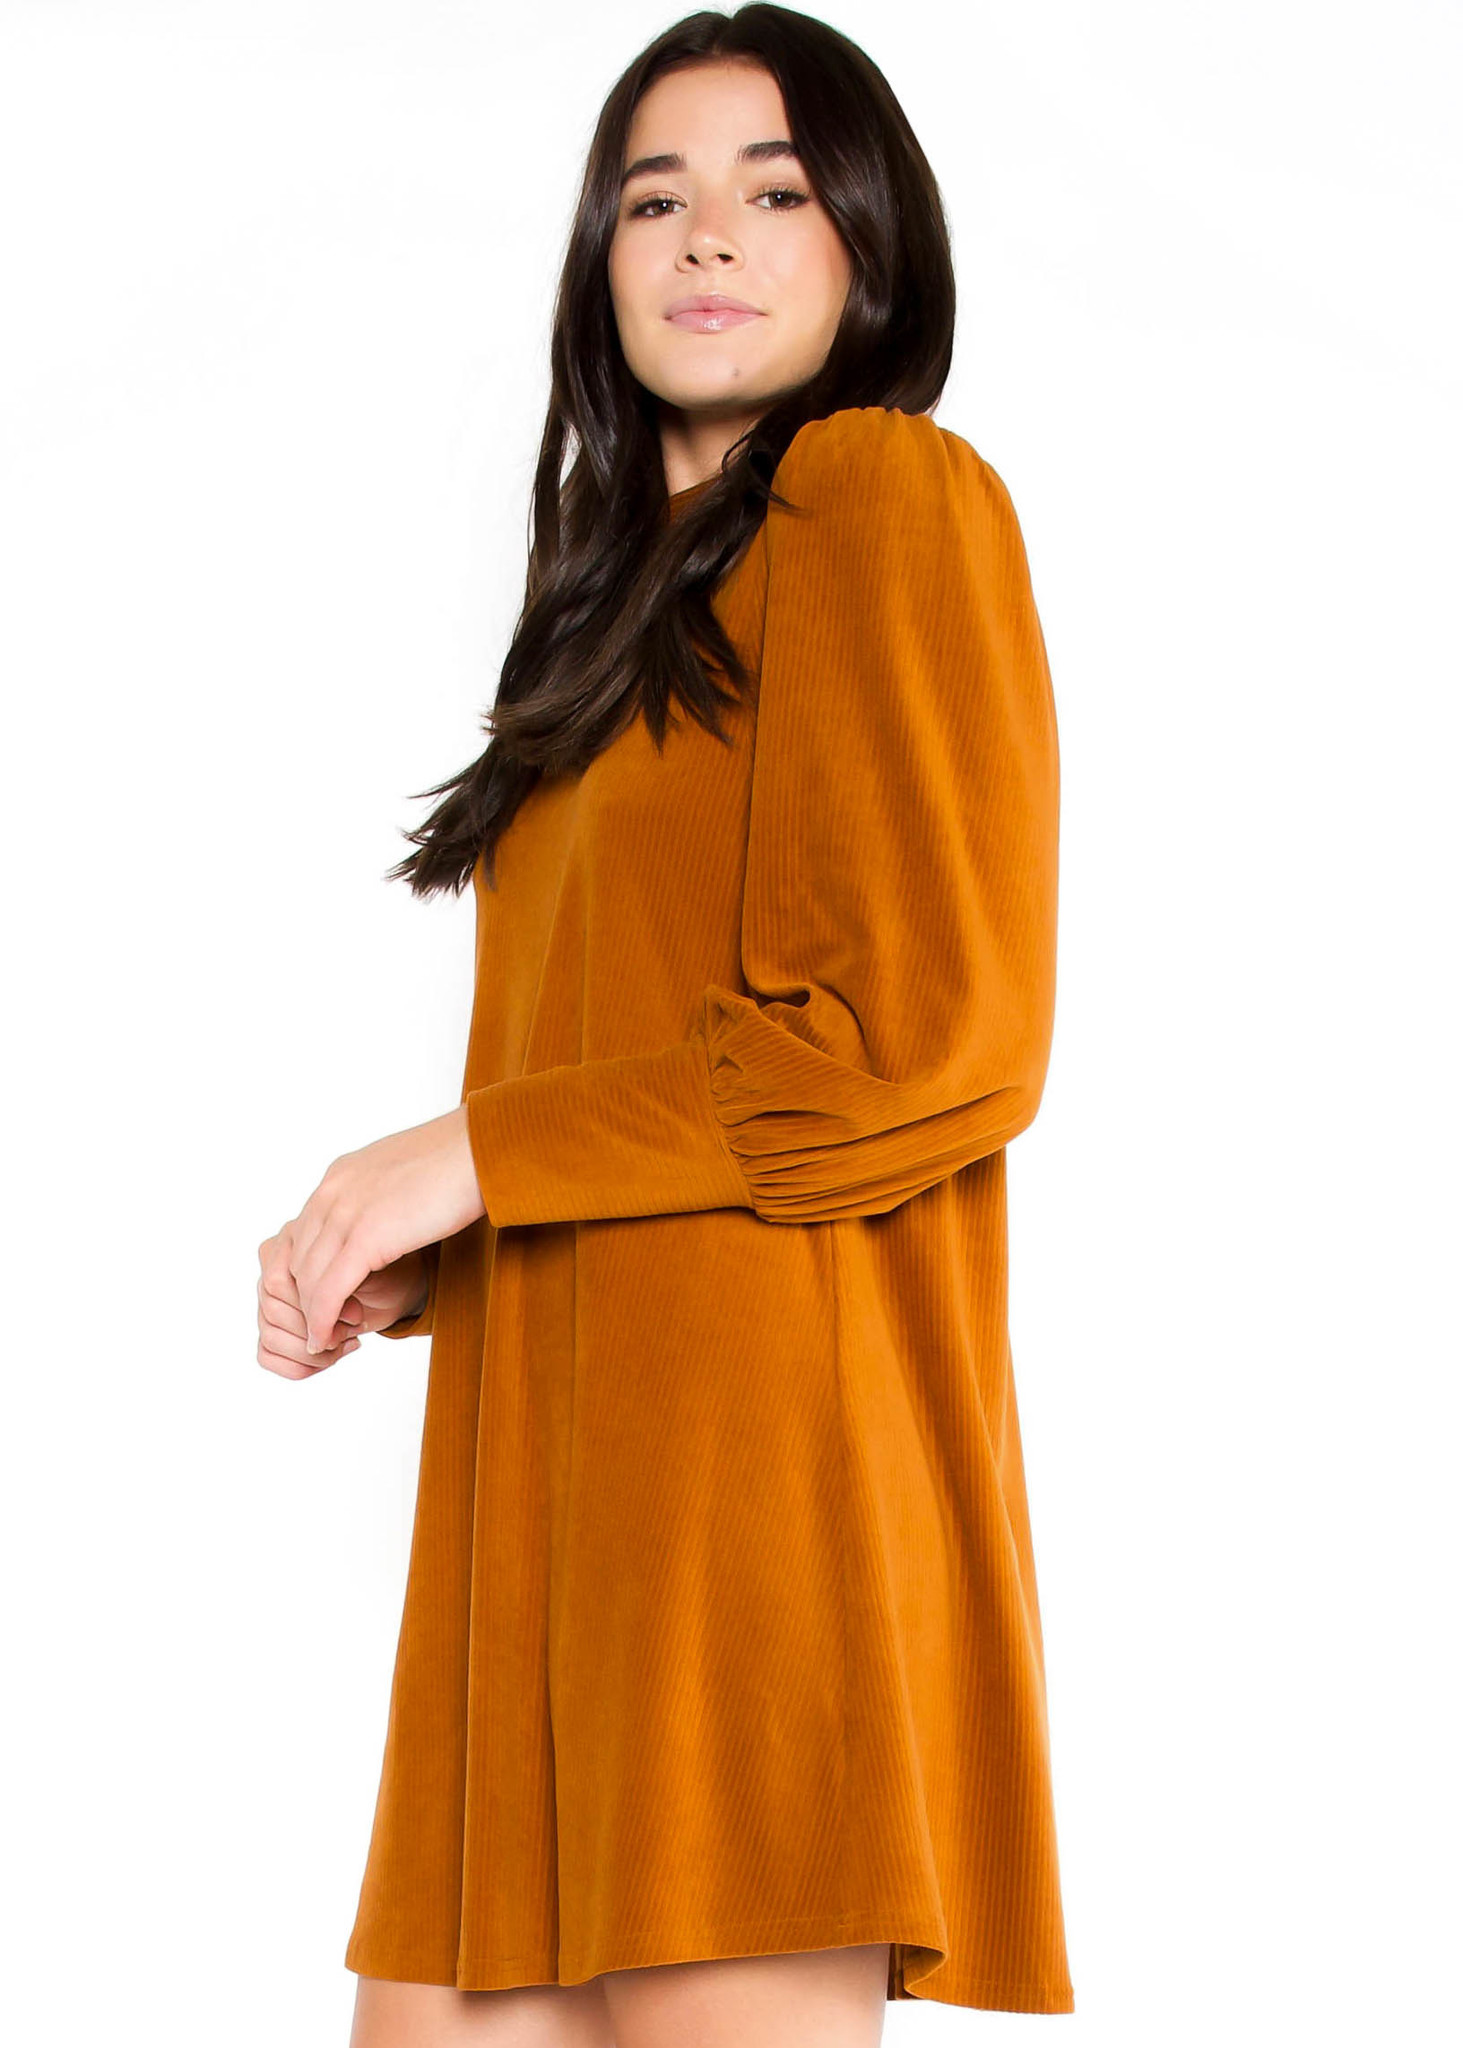 SPICE SPICE BABY SUEDE DRESS